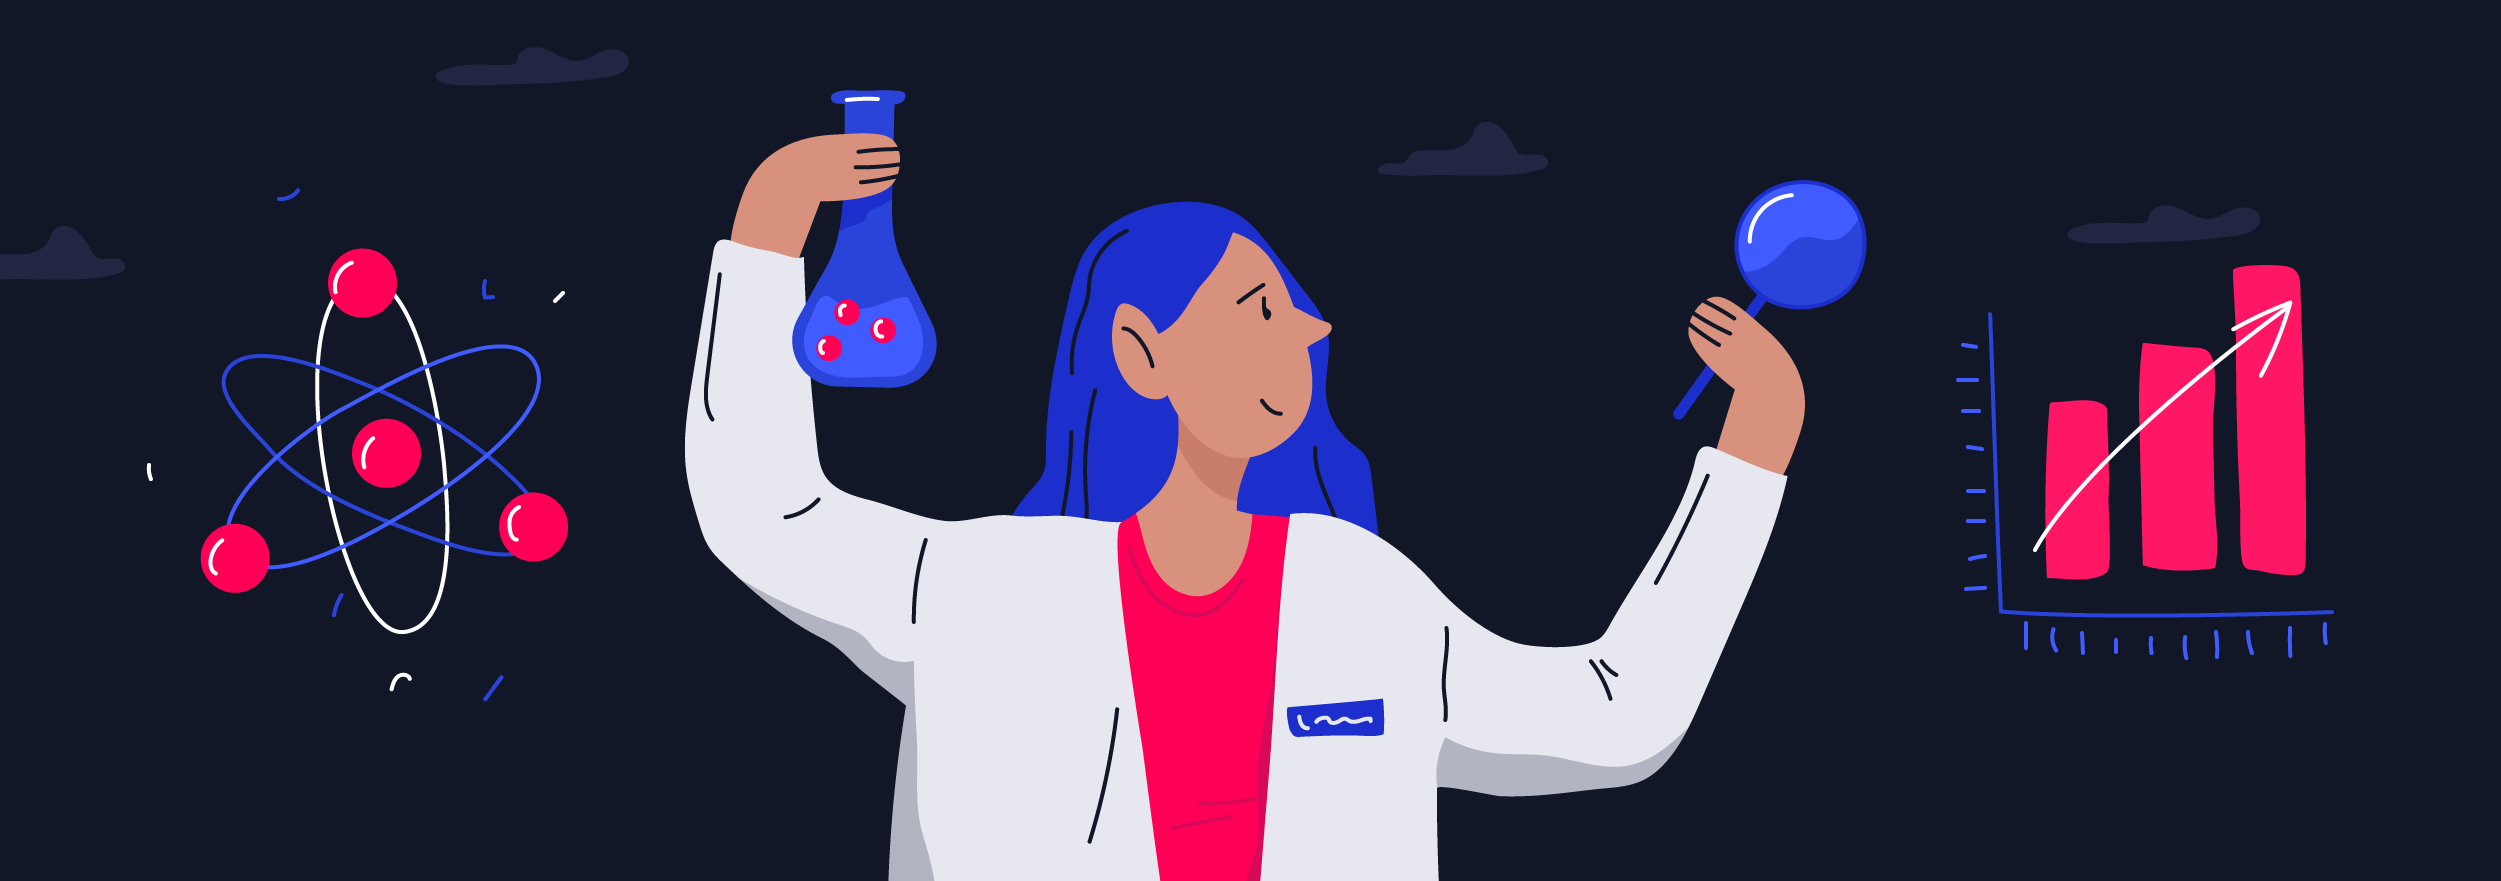 Science in marketing – modeling growth with data